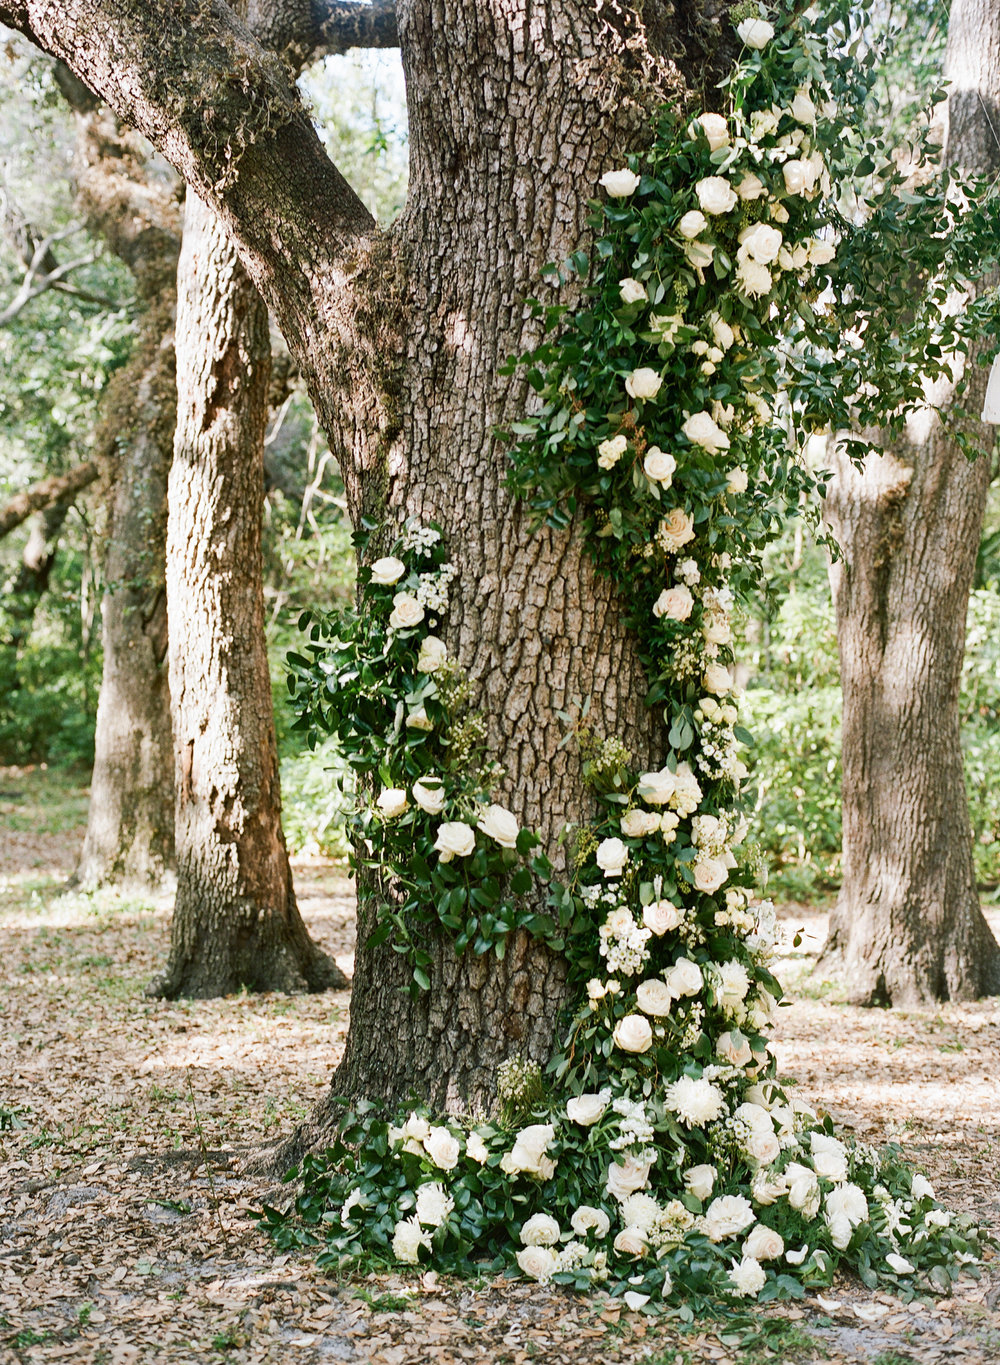 25-cascading-flowers-tree-trunk.jpg